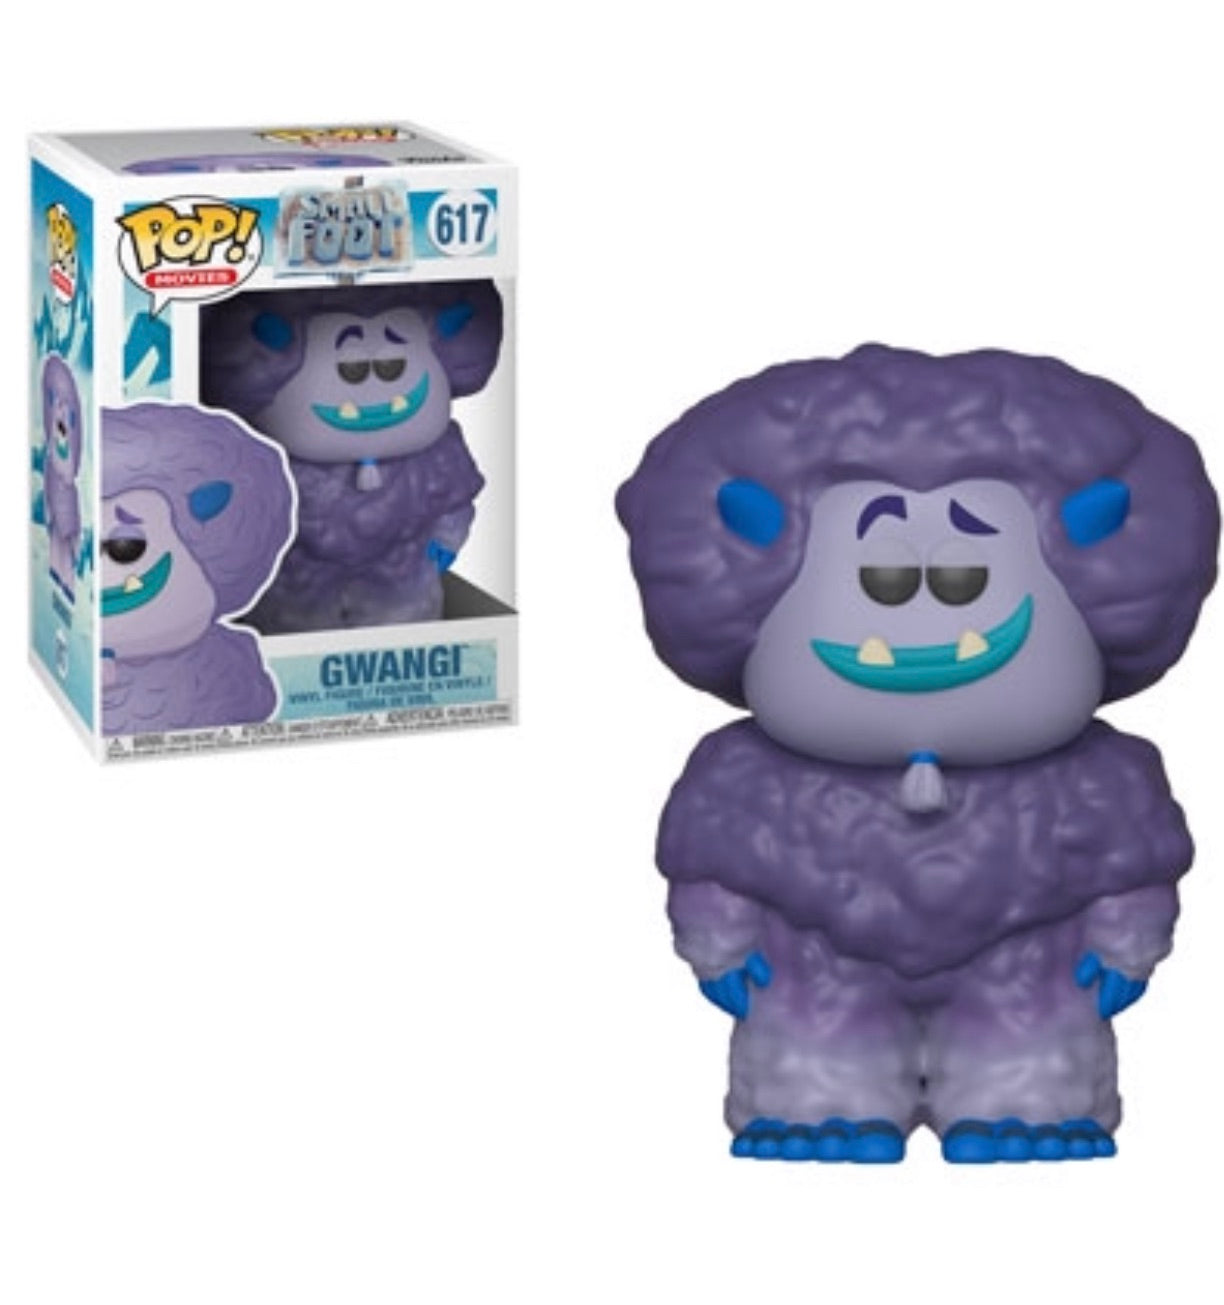 SMALL FOOT FUNKO POP! GWANGI #617 (PRE-ORDER)